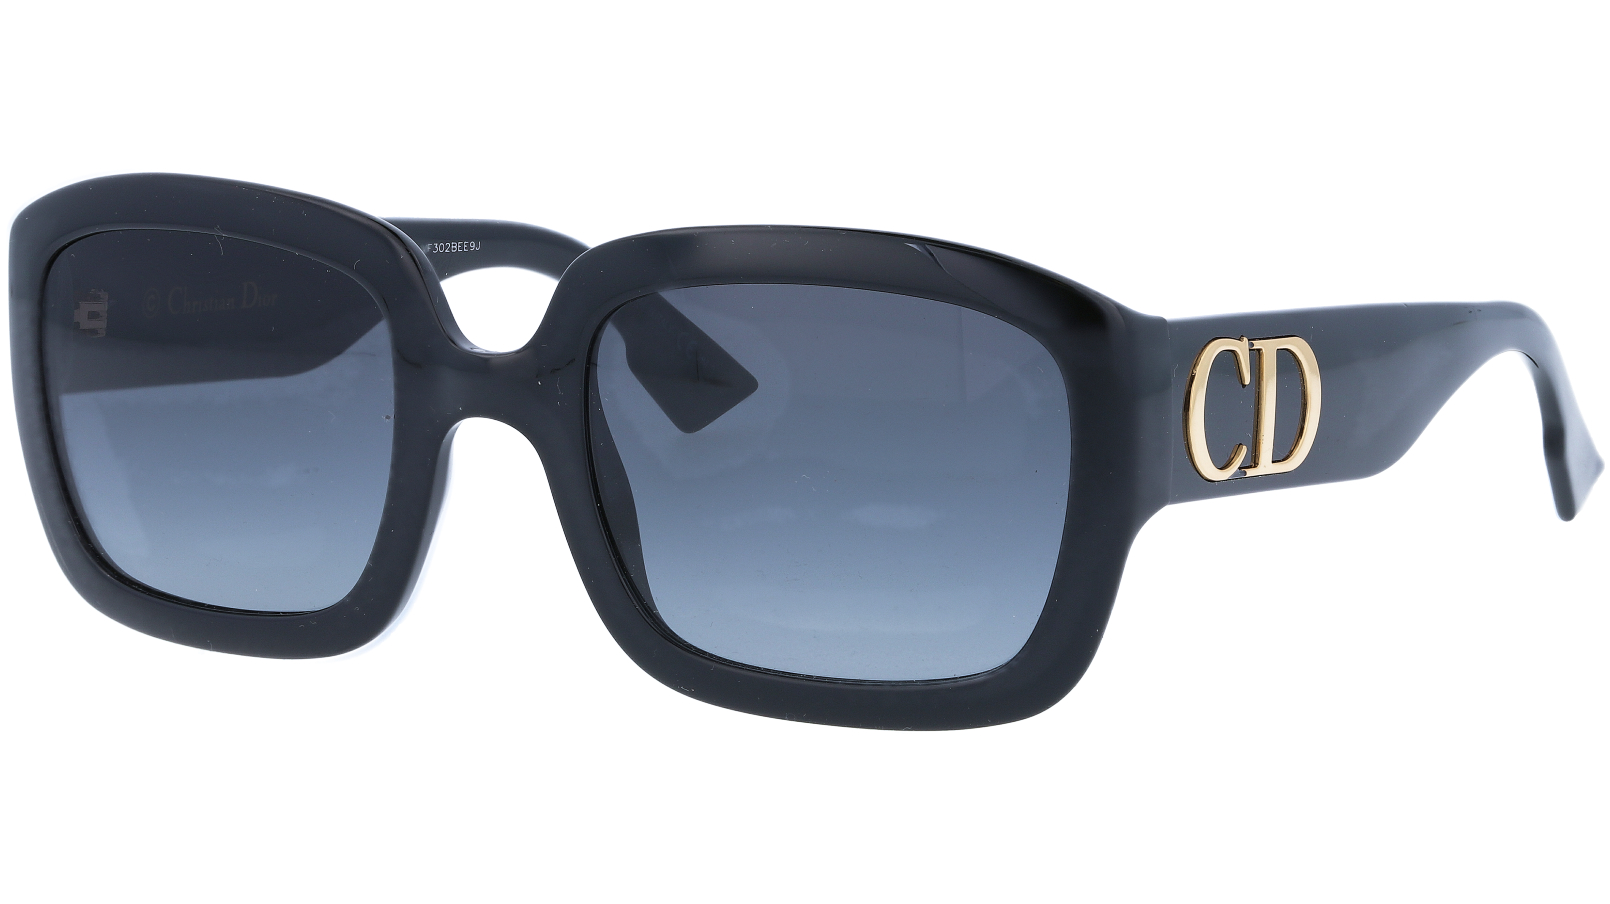 DIOR DDIOR 8079O 54 BLACK Sunglasses